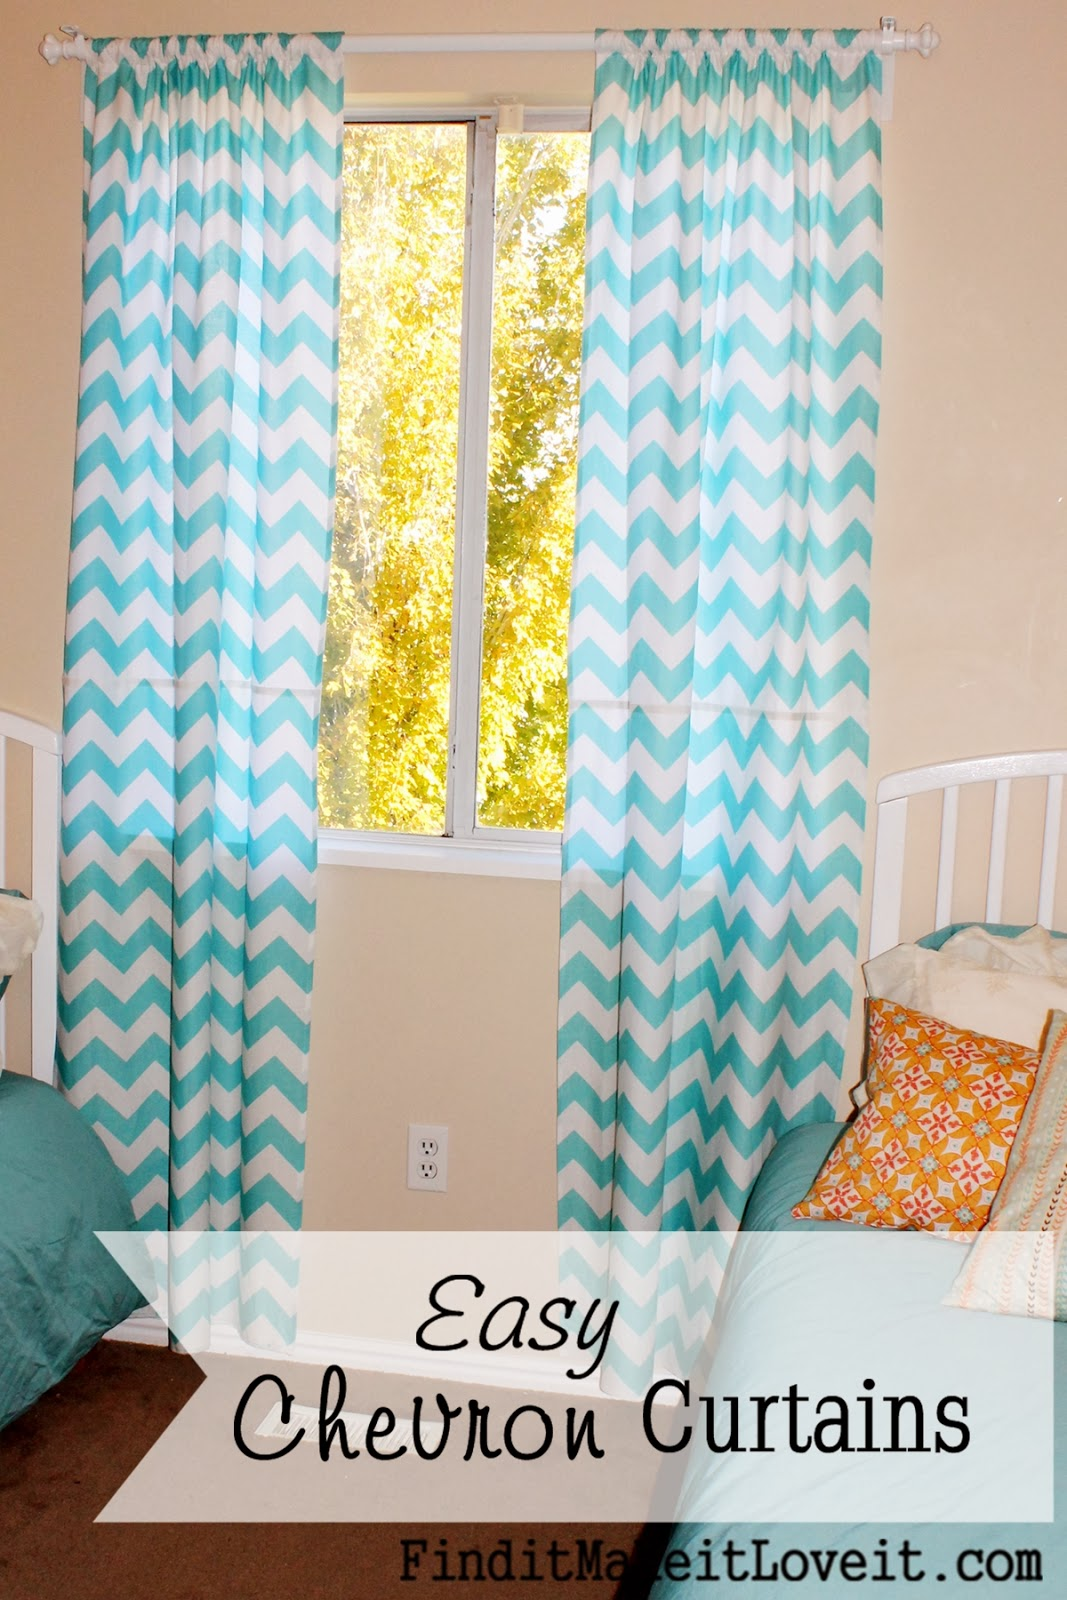 Easy Chevron Curtains  Find It, Make It, Love It. Modern Living Room Decorating Ideas. Grey Couch In Living Room. Simpson Living Room. How To Draw A Dining Room Table. Living Room Chairs Furniture. Side Table Designs For Living Room. Wall Colors Ideas For Living Room. 1950s Living Room Decor